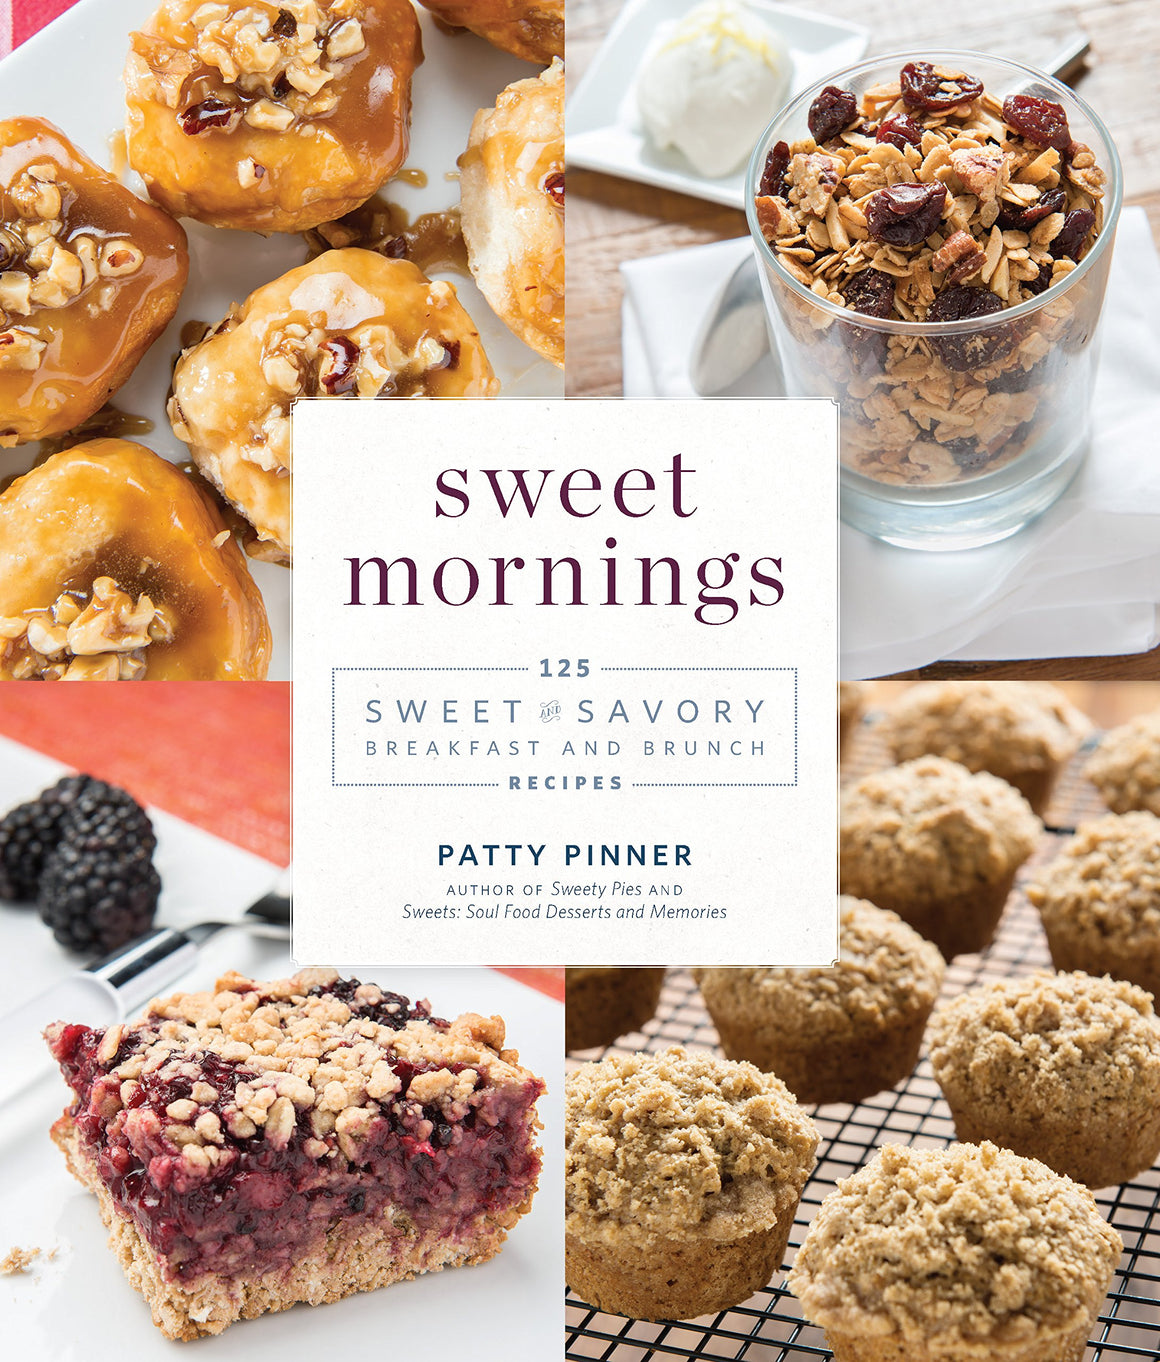 (Breakfast) Patty Pinner. Sweet Mornings: 125 Sweet and Savory Breakfast and Brunch Recipes